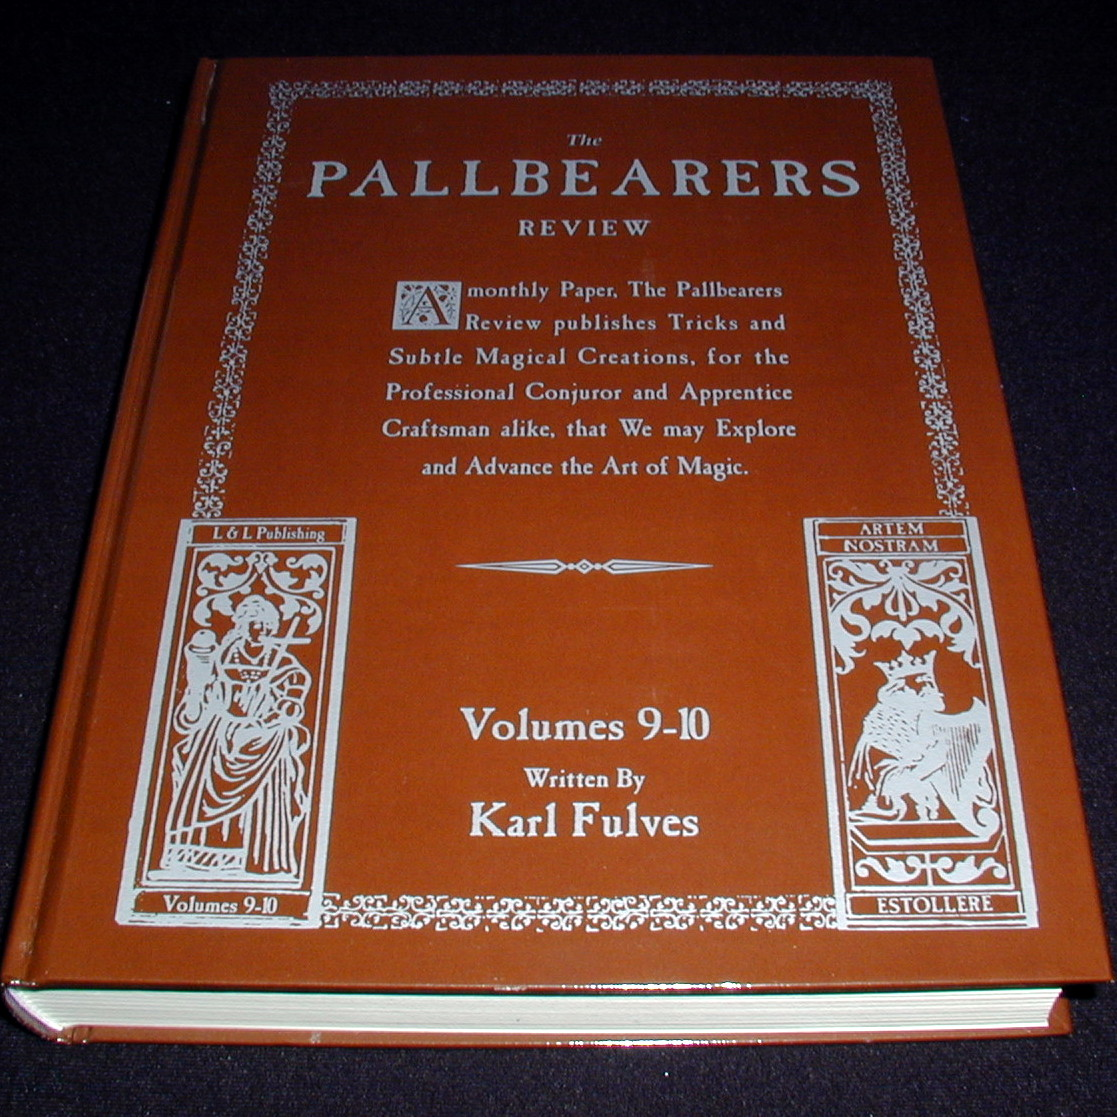 Karl Fulves - Pallbearers Review vols 9-10